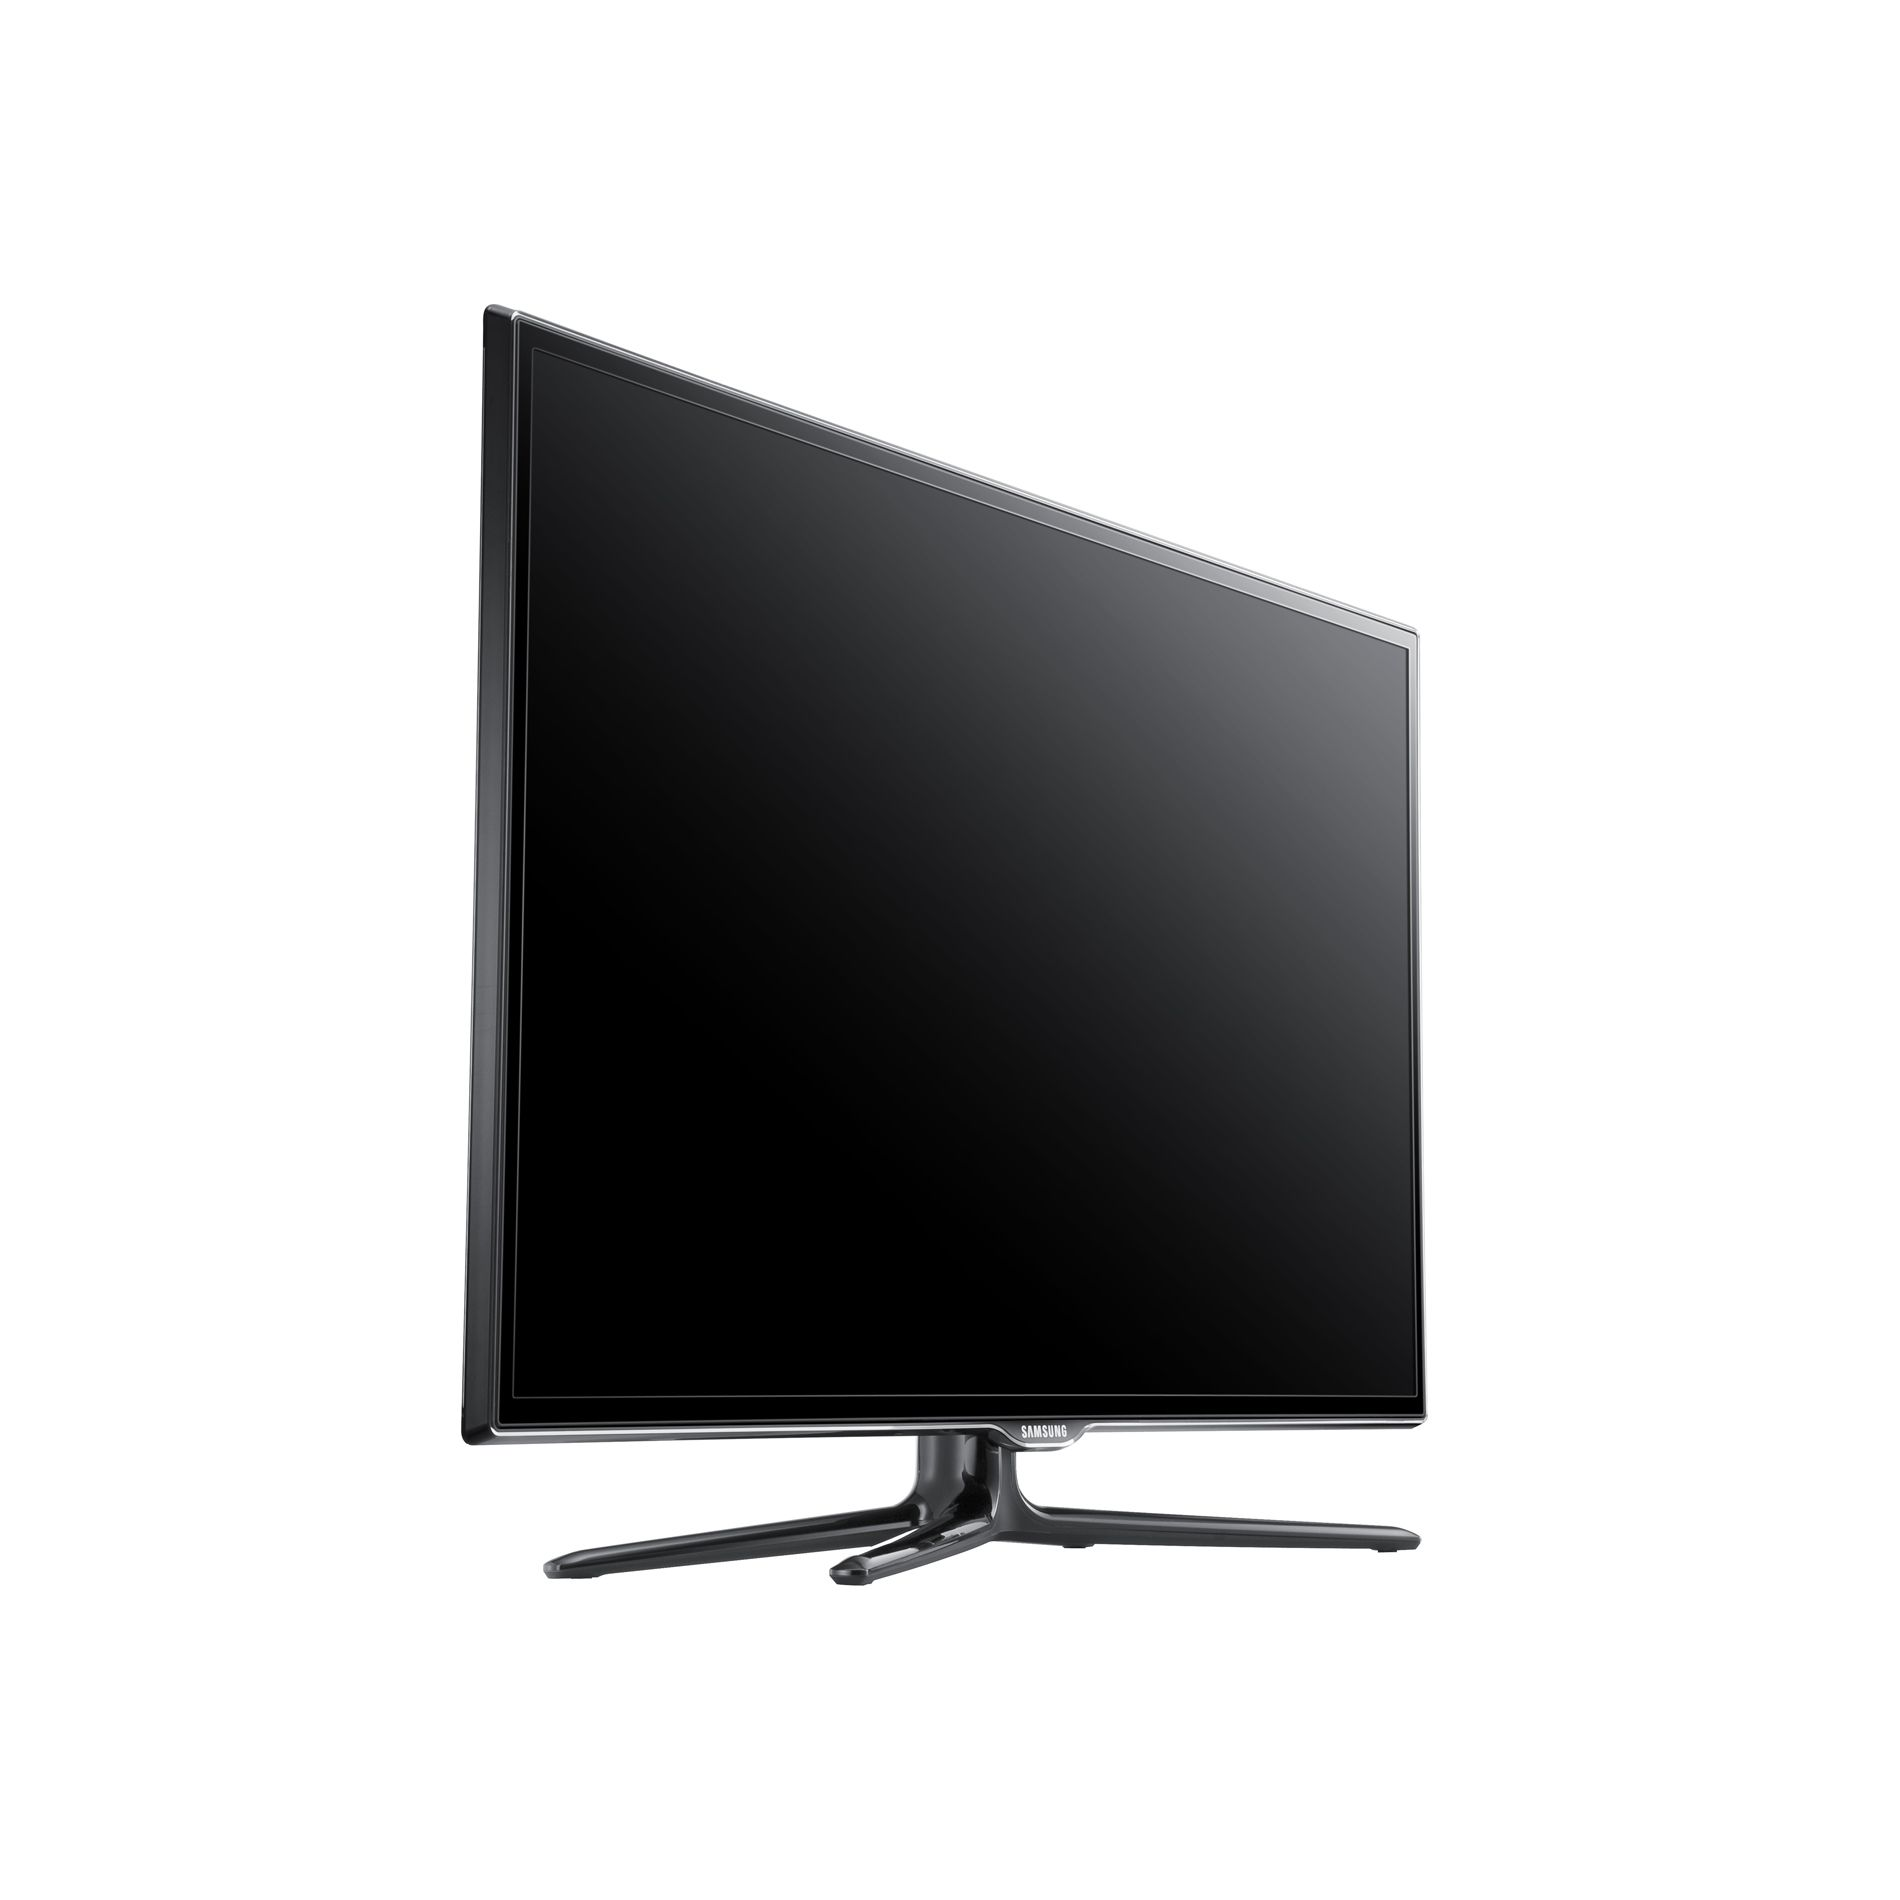 "Samsung 55"" Class 1080p 120Hz 3D LED Slim Smart HDTV- UN55ES6500 with 2 Pairs of 3D Glasses"